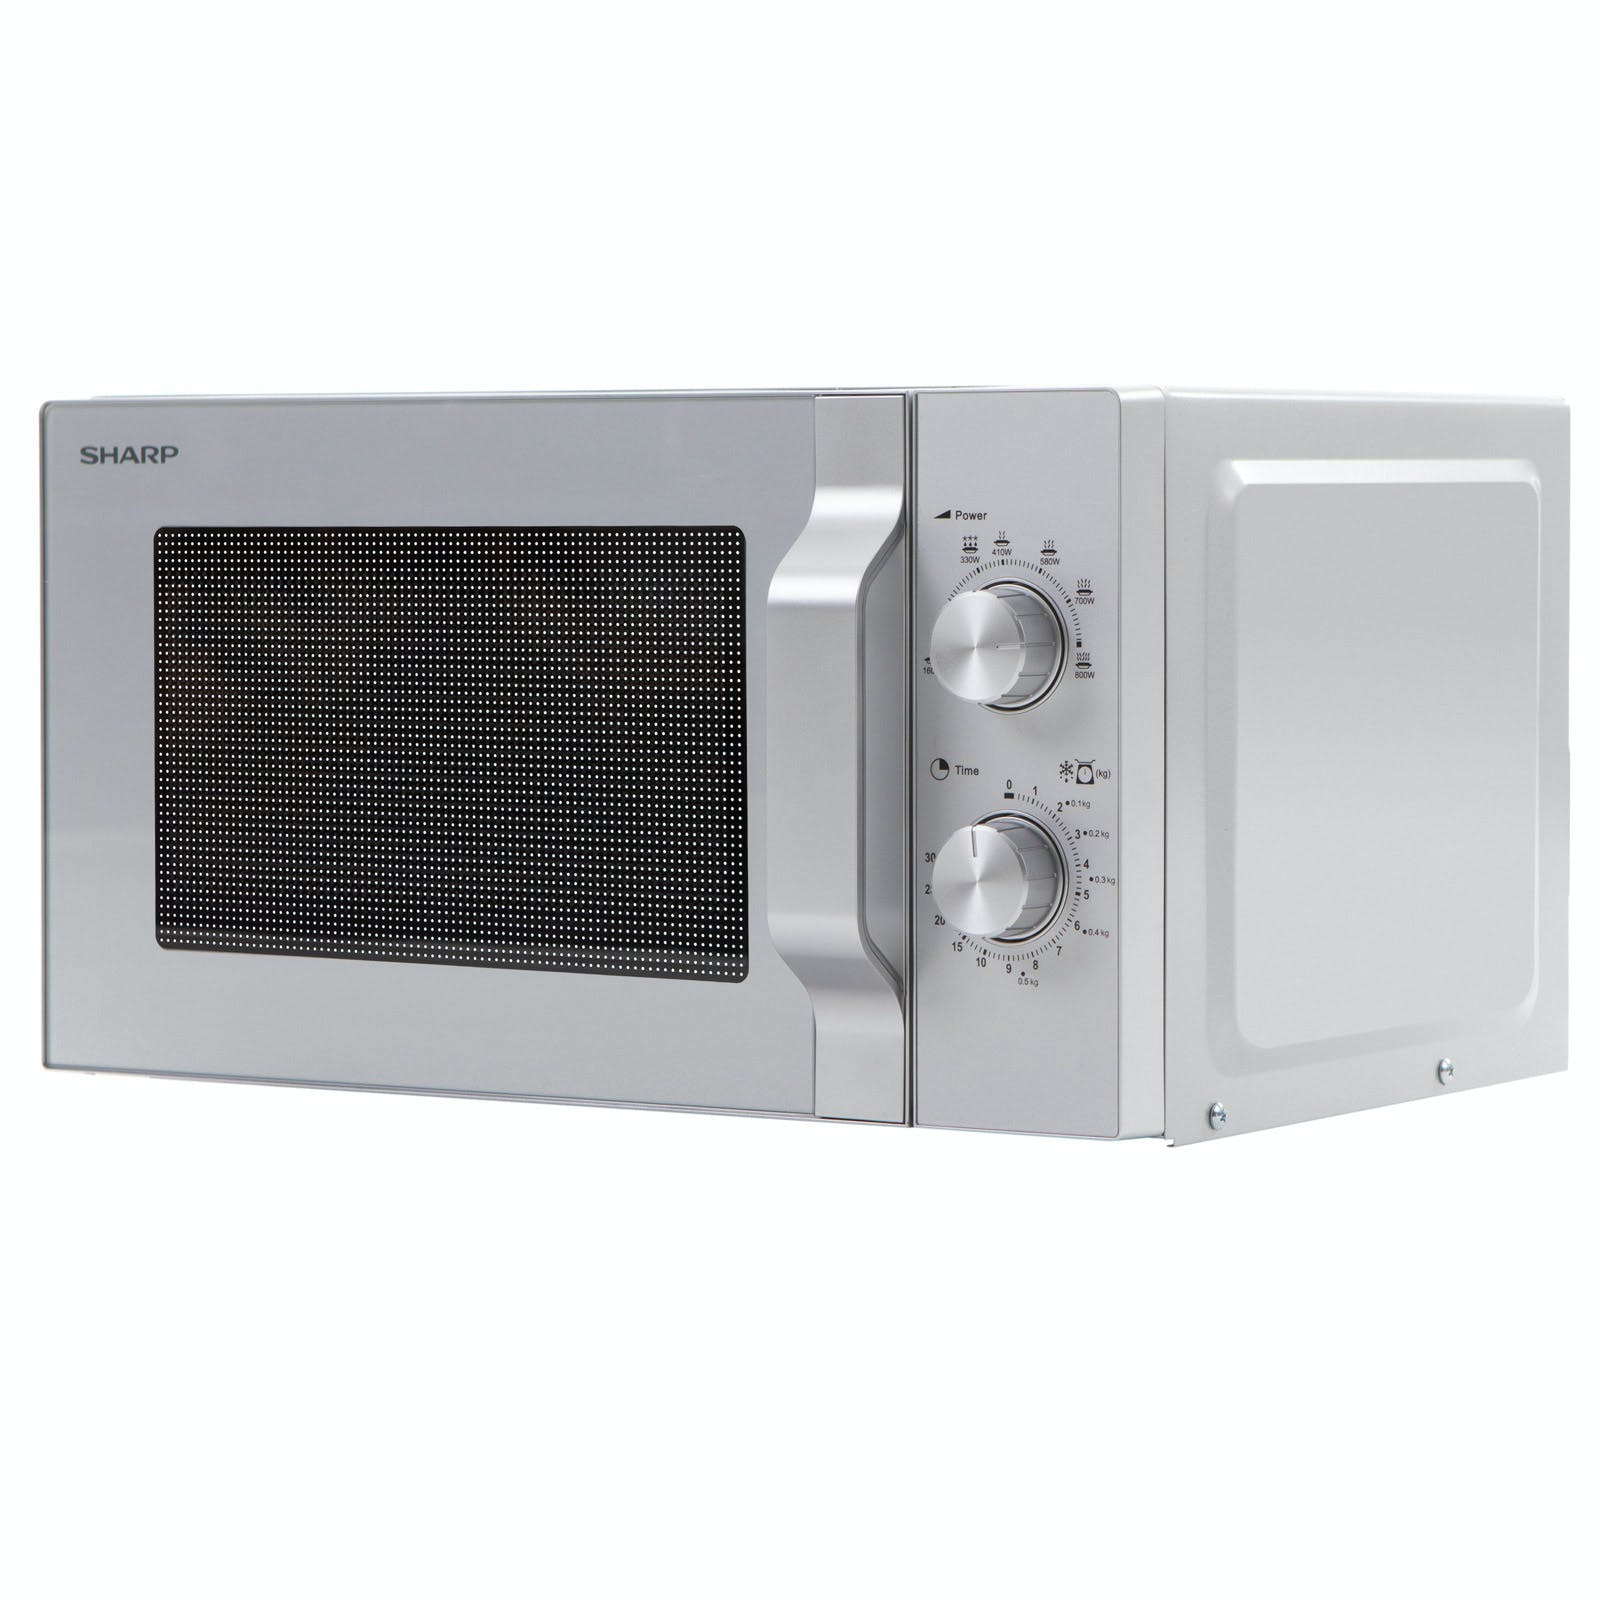 Sharp R204slm Compact Microwave Oven In Silver 20l 800w